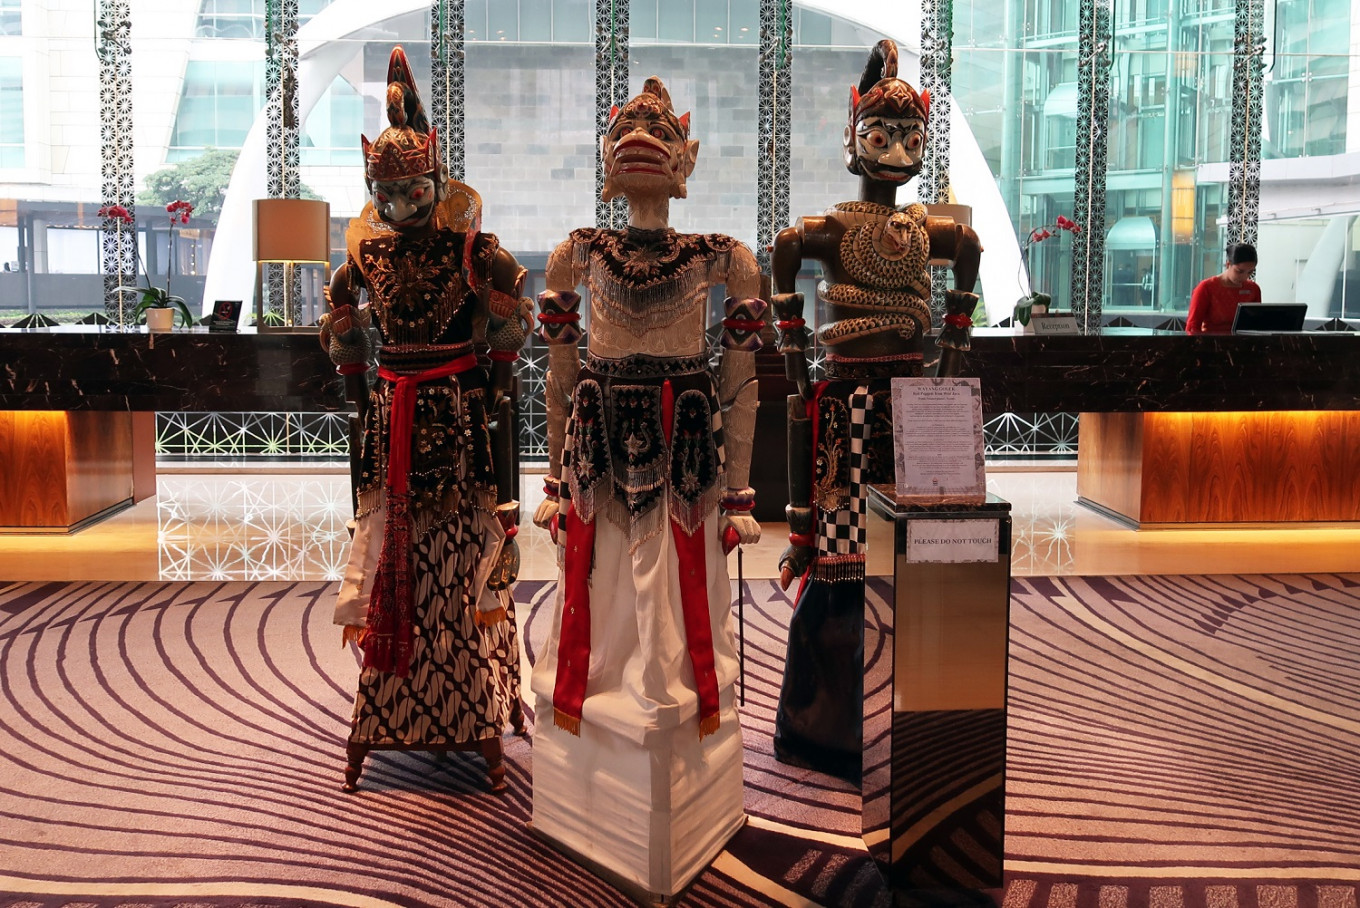 Life-sized 'wayang golek' in the reception area of Hotel Indonesia Kempinski in Central Jakarta.